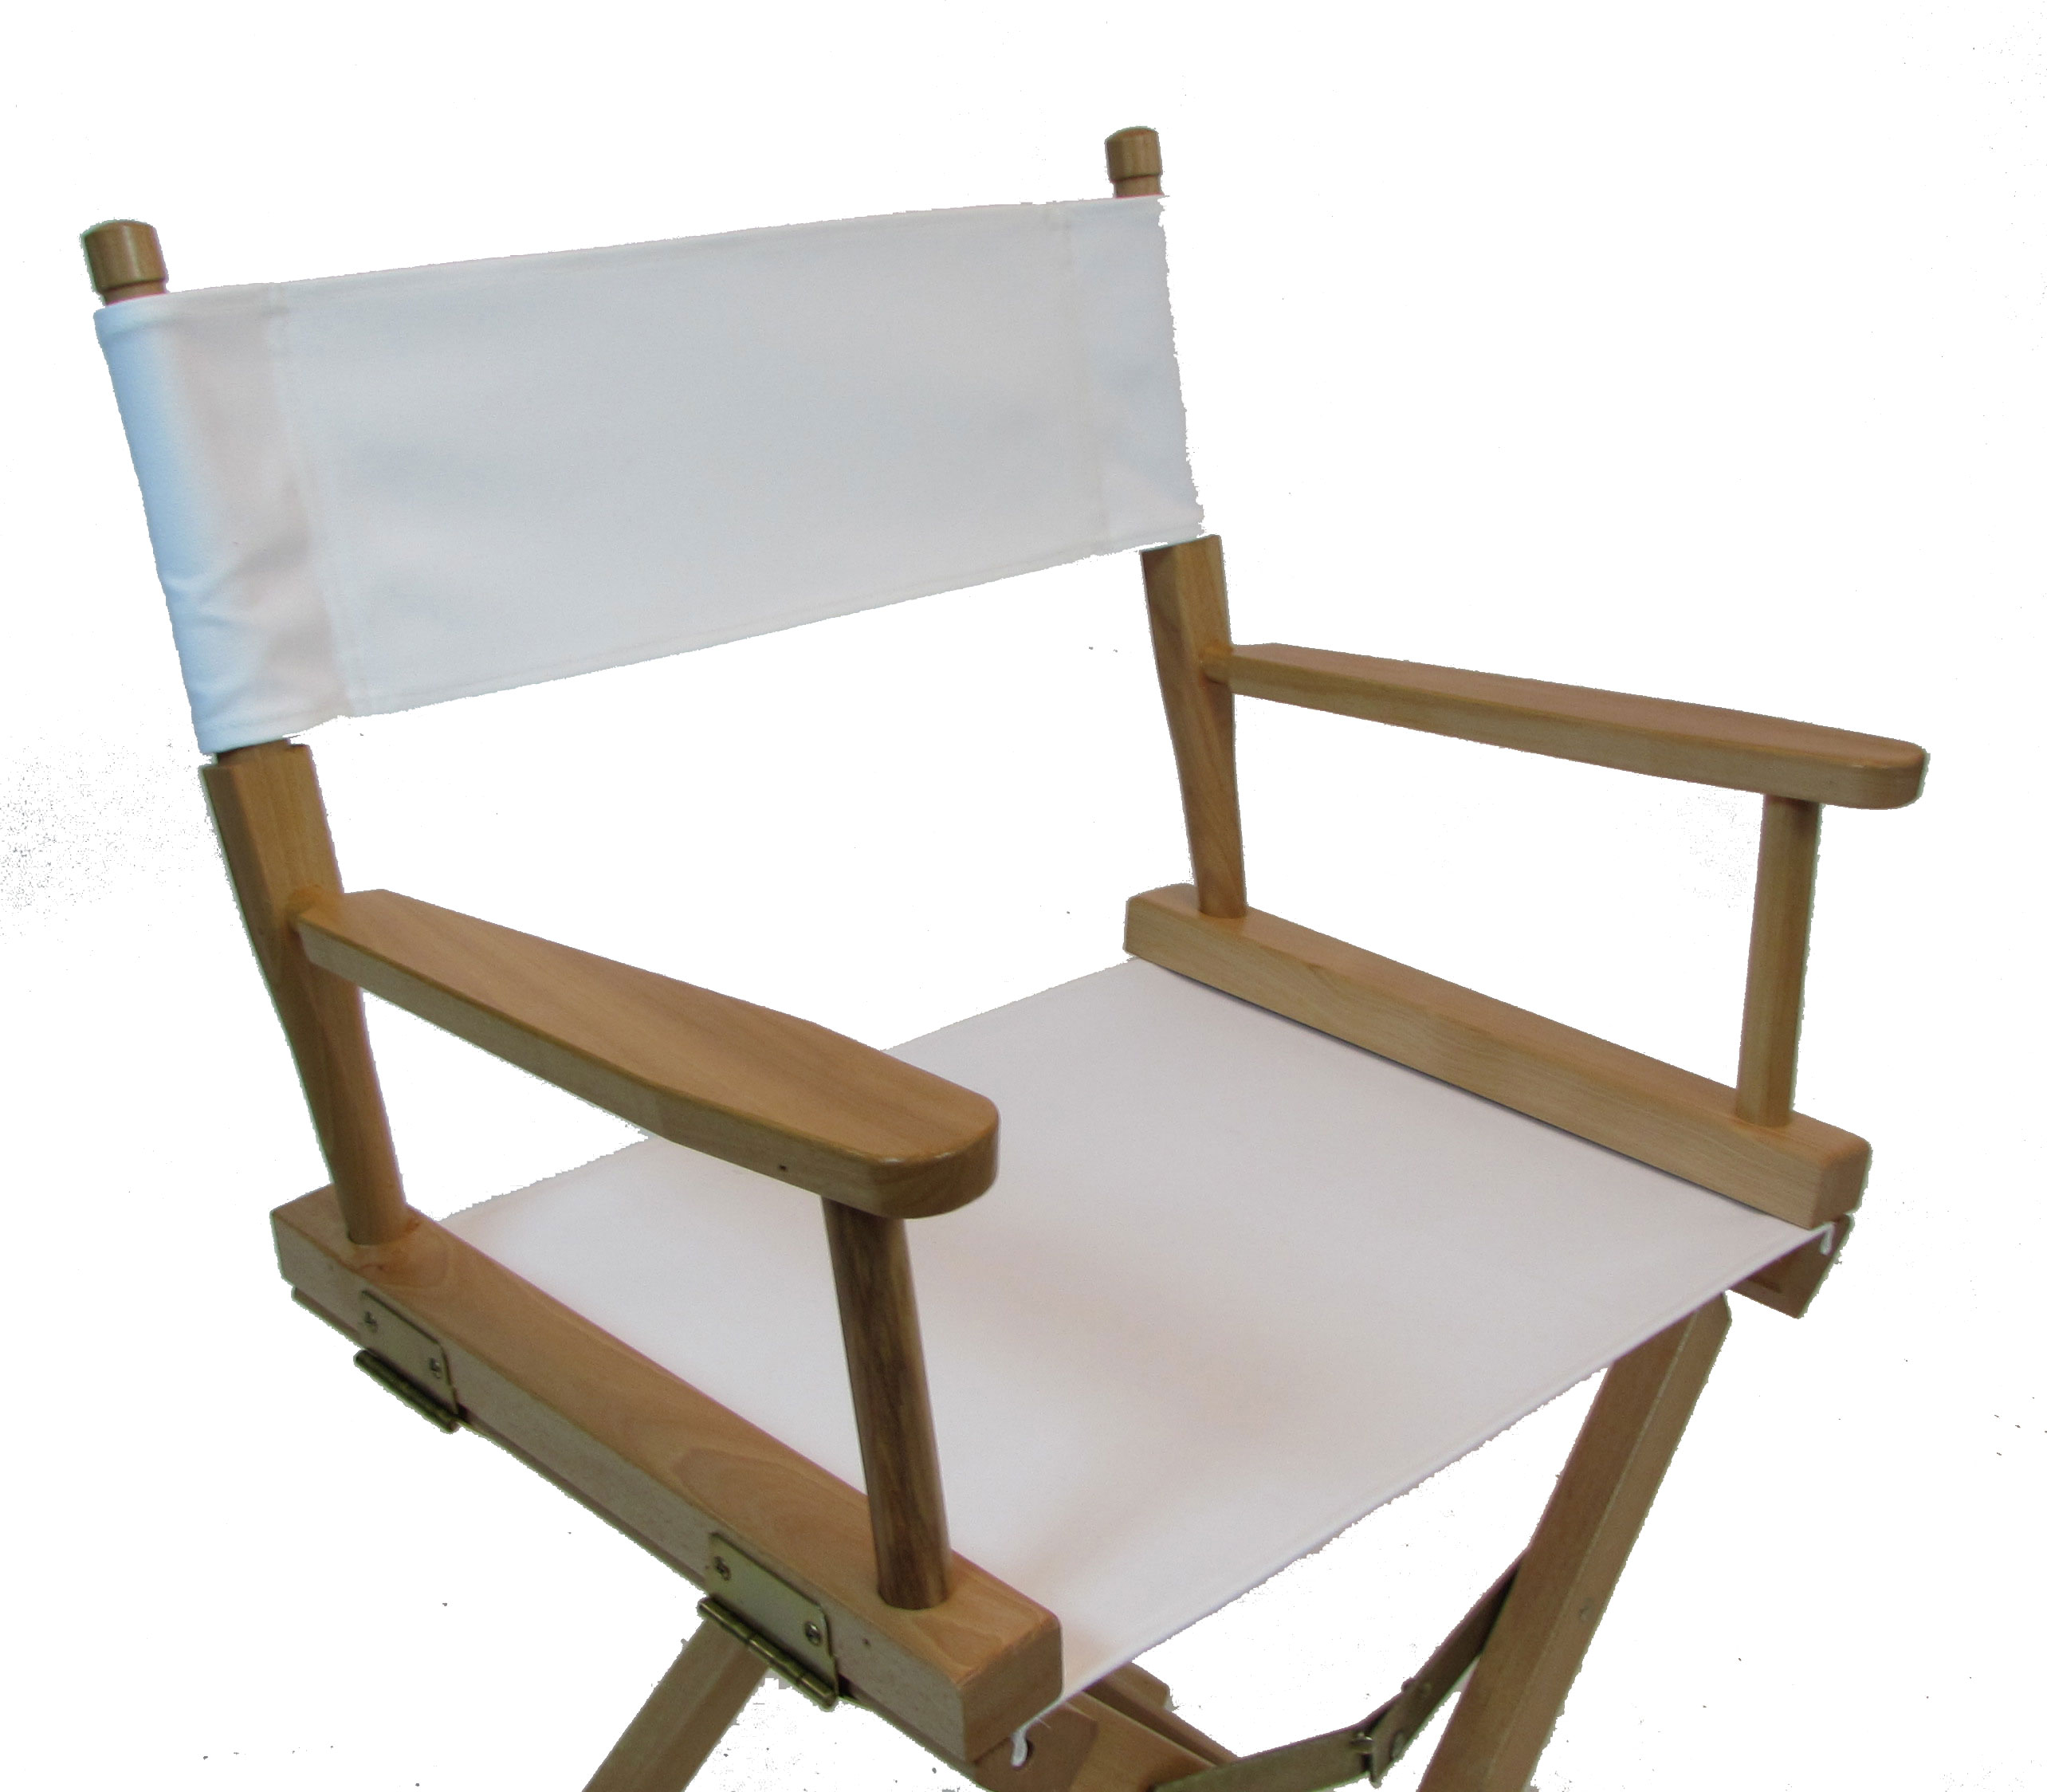 Find great deals on eBay for everywhere chair. Shop with confidence.